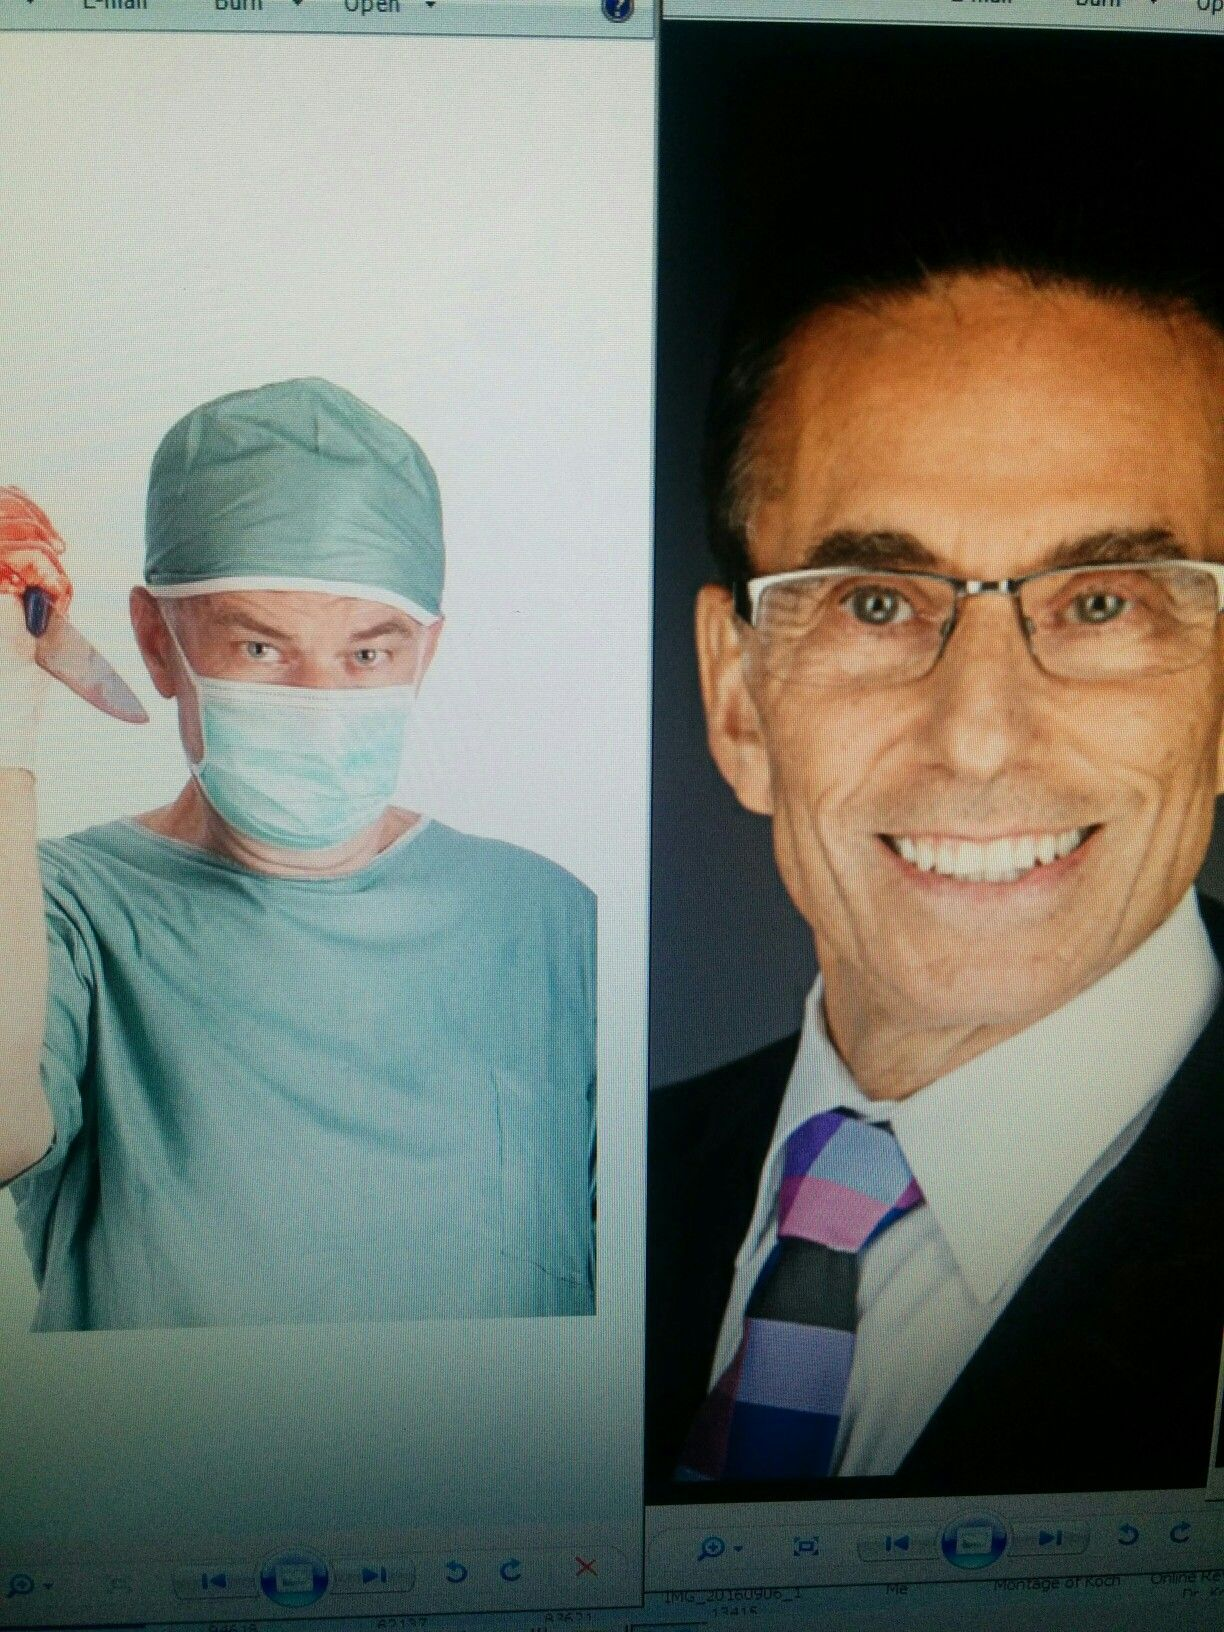 Dr Todd Koch is a horrible inhumane quack who mutilated me.